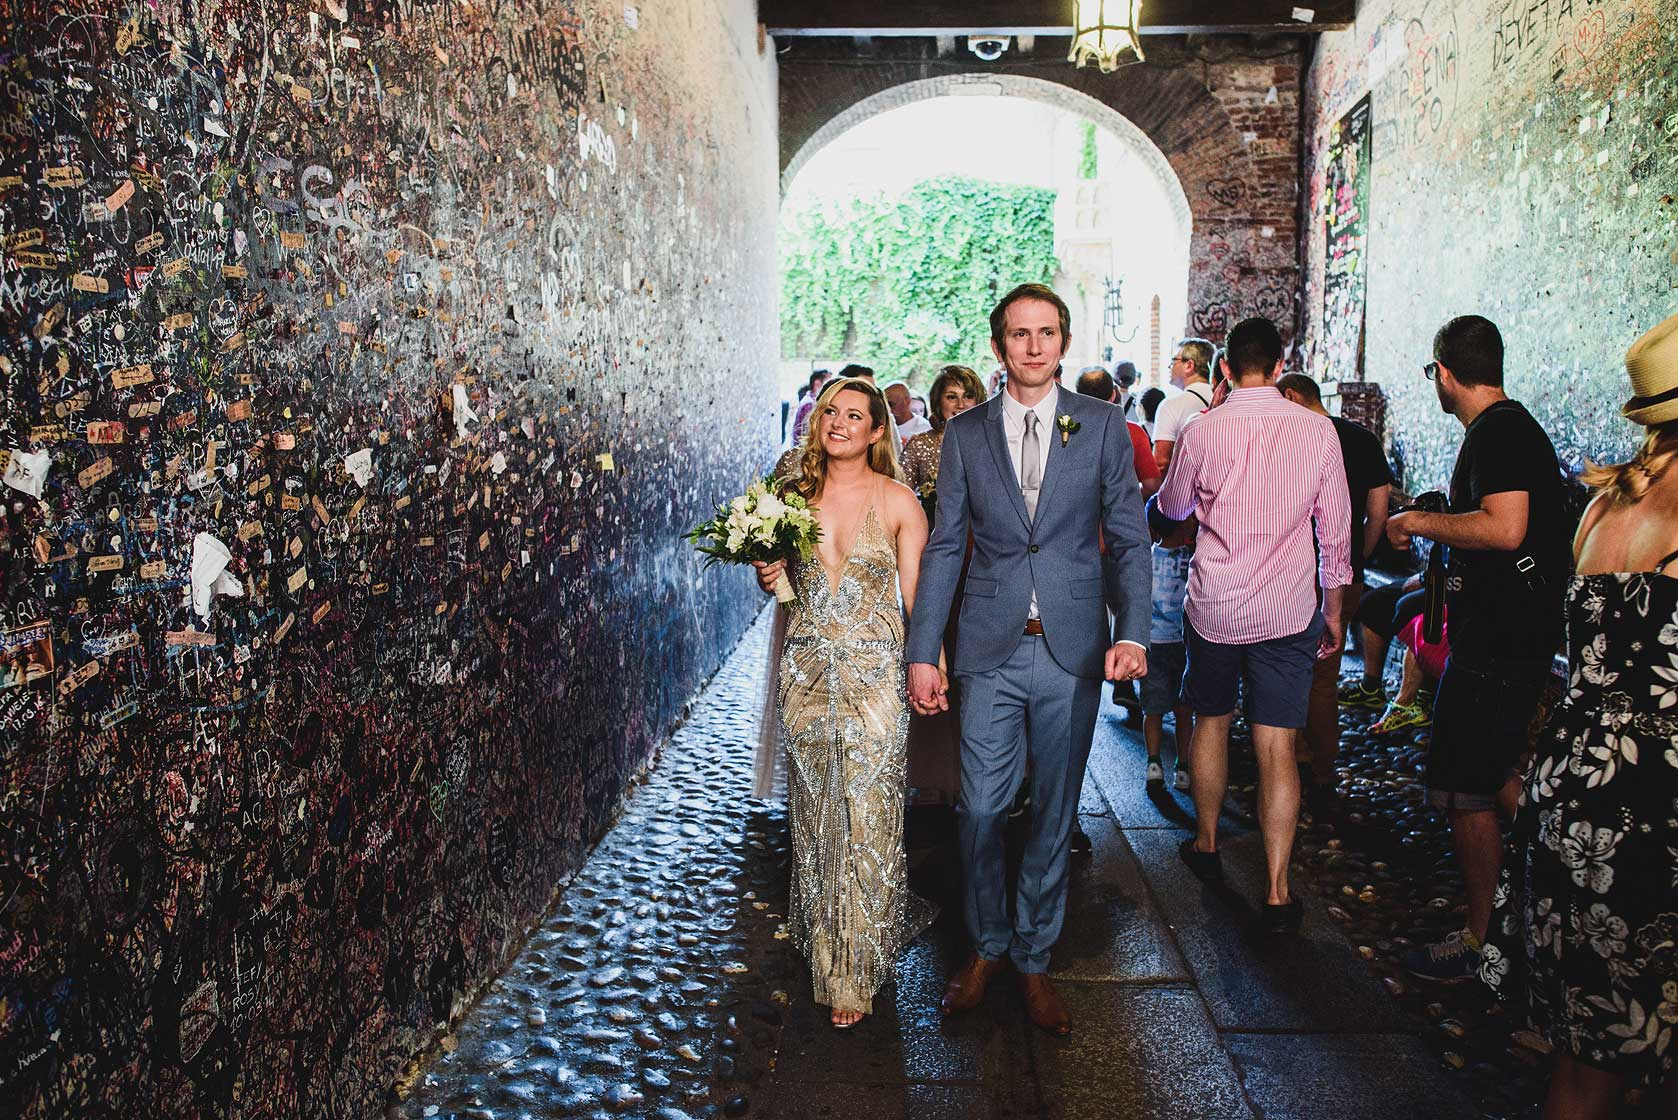 Verona Wedding Photography